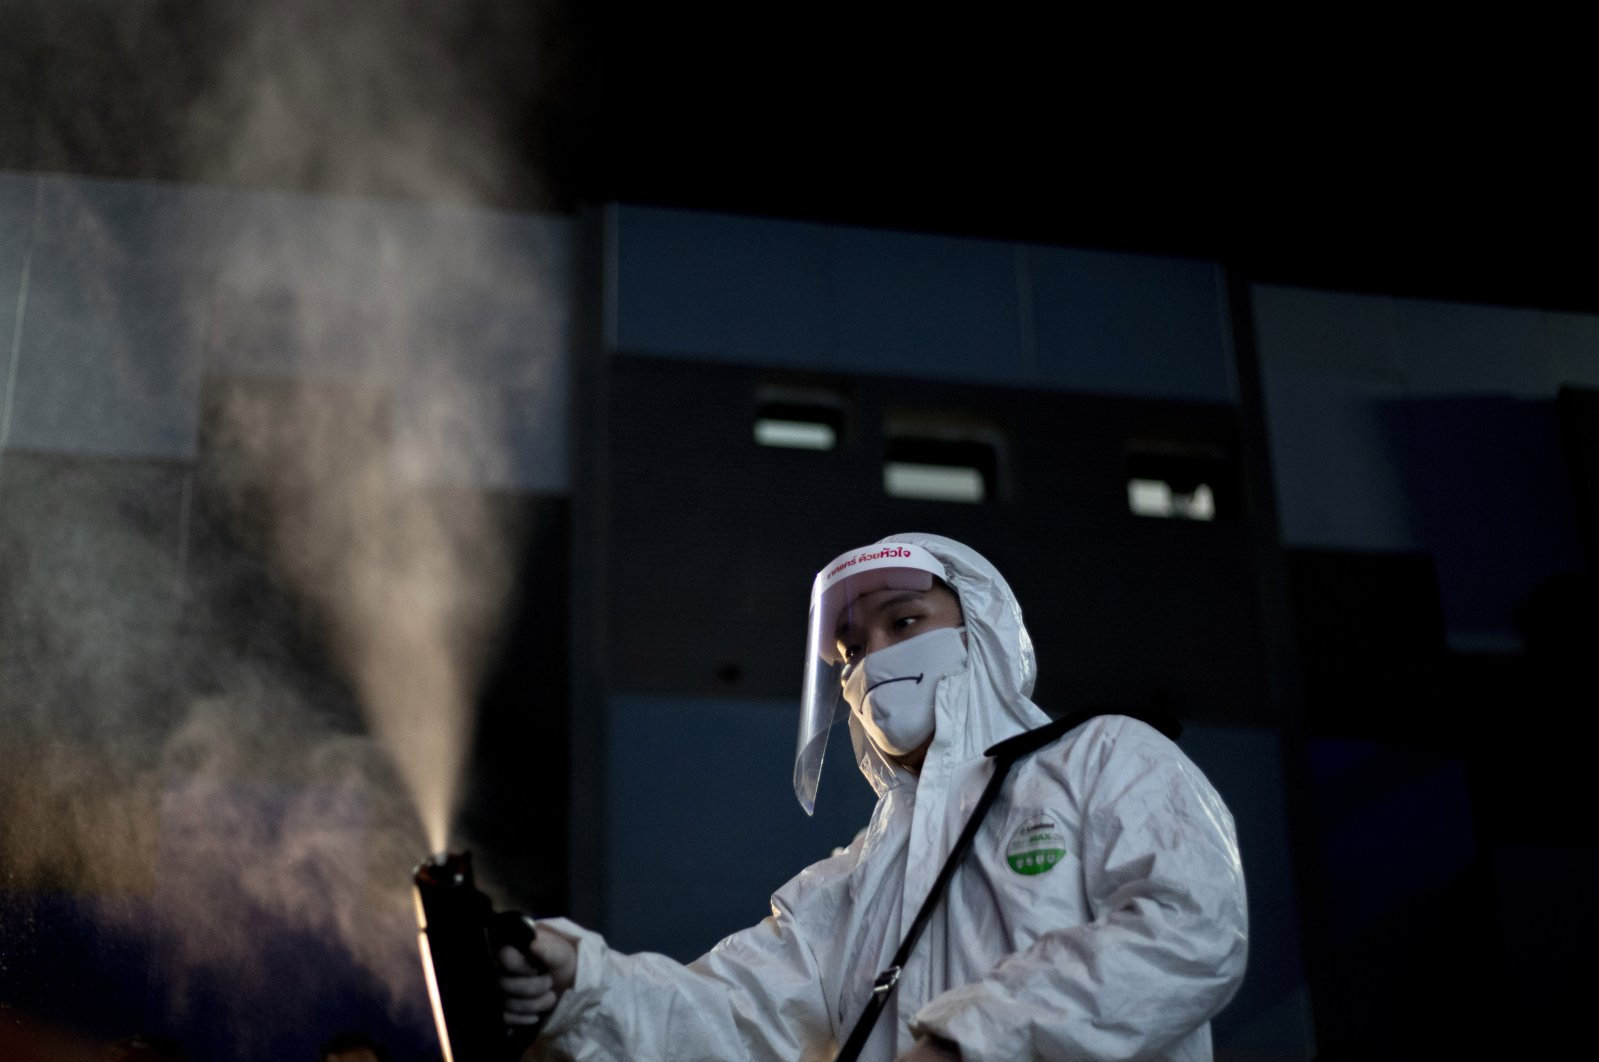 An employee sprays disinfectant as a precaution against the coronavirus at the Paragon Cineplex movie theater in Bangkok, Thailand, Monday, June 1, 2020. (AP Photo)